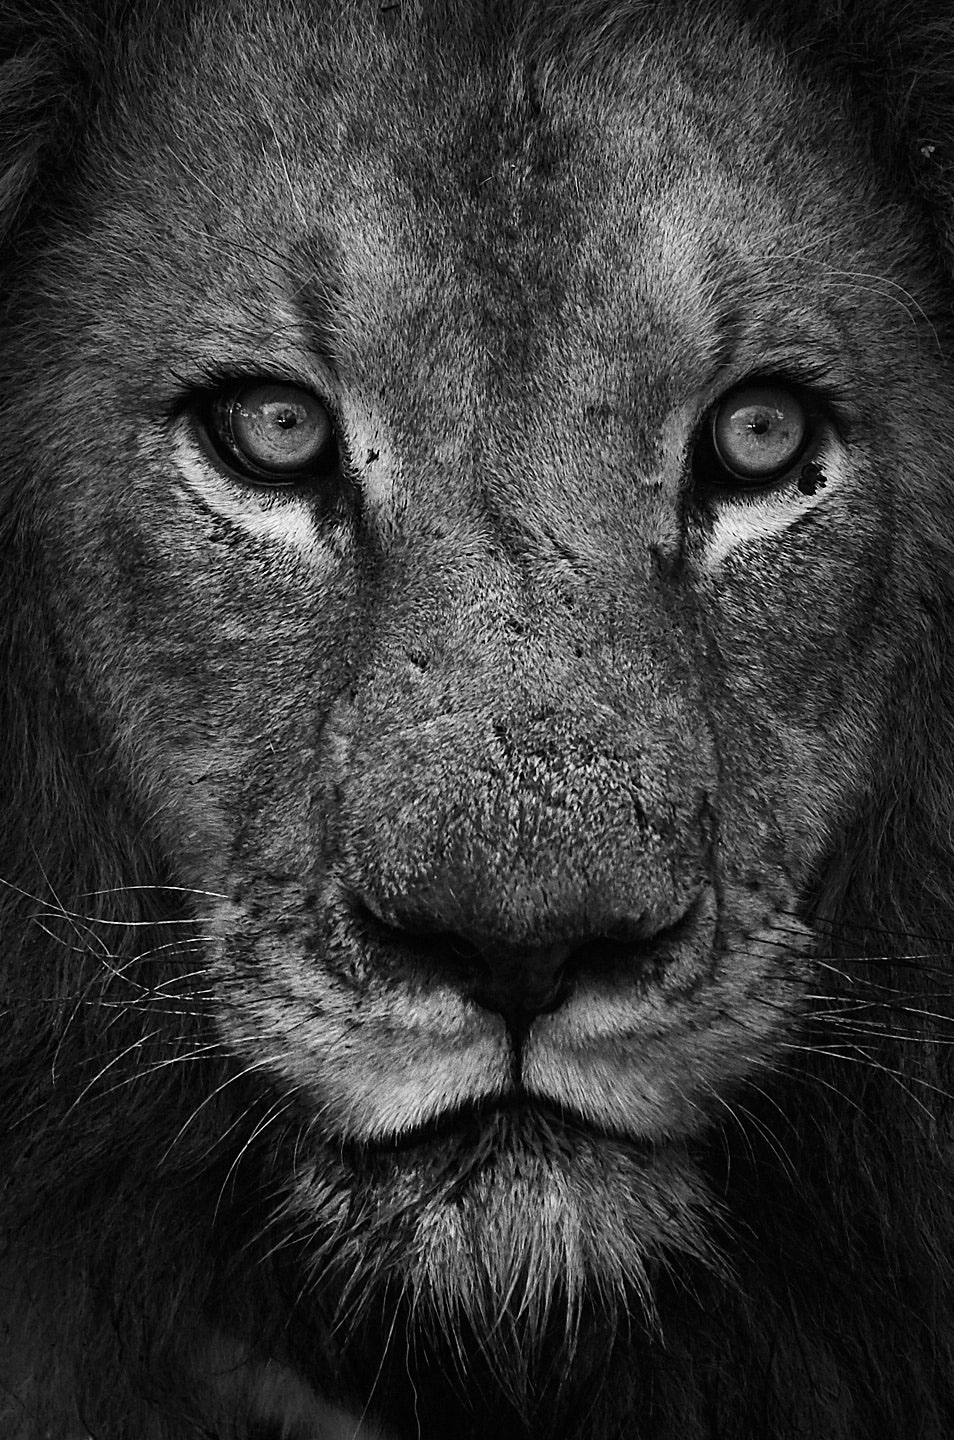 male-lion-black-and-white-portrait